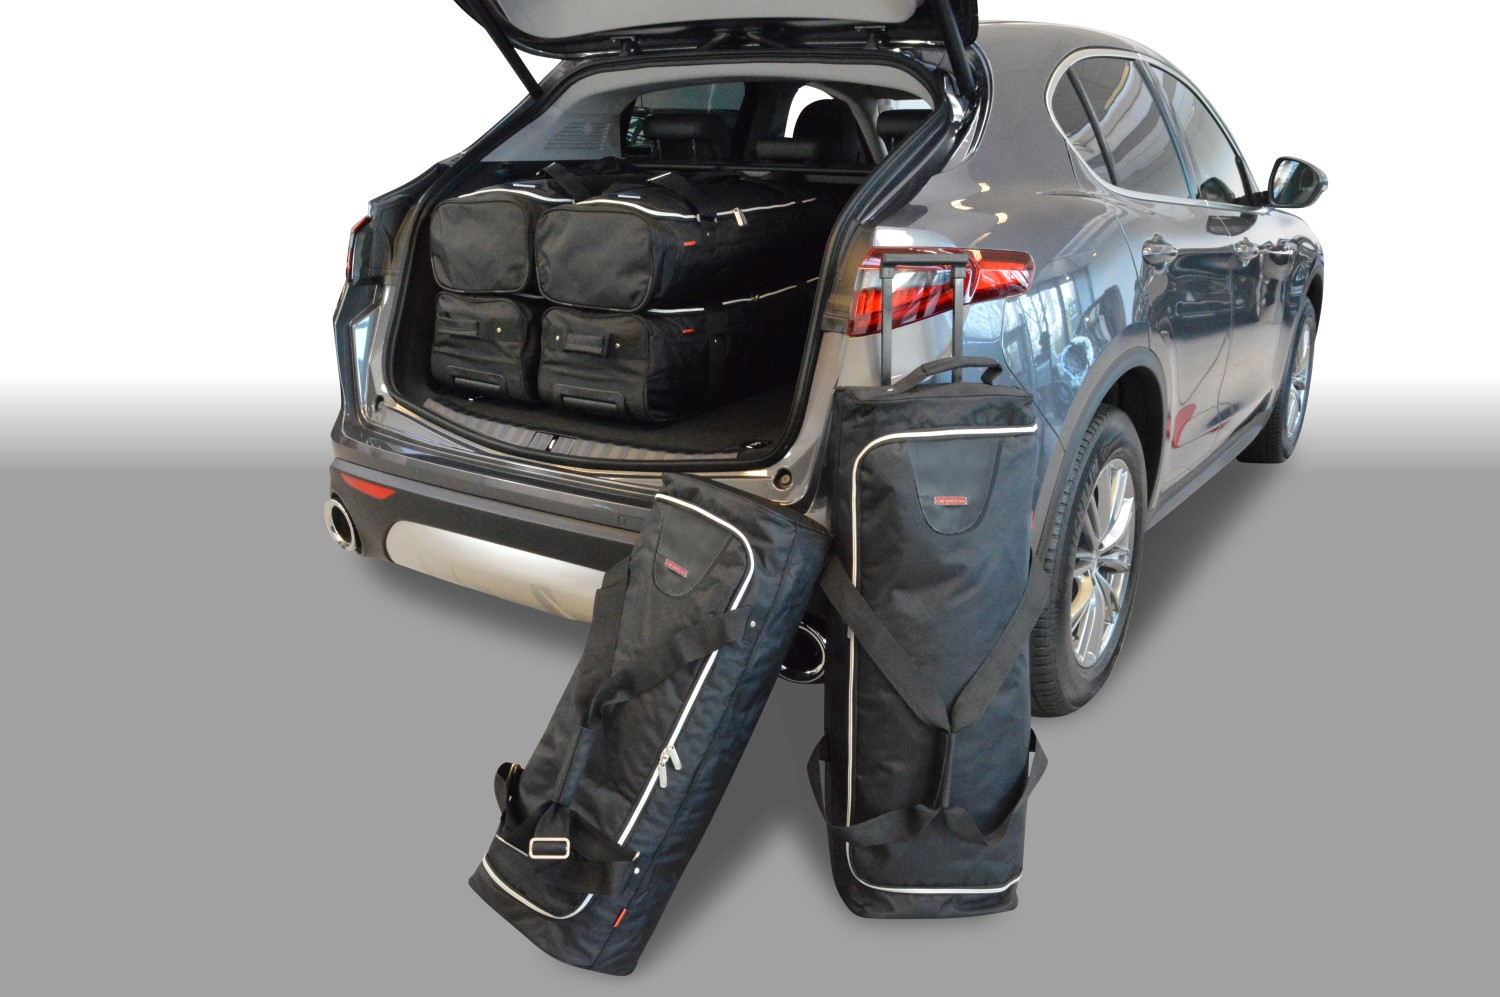 Alfa Romeo Stelvio 2016- 5 door Car-Bags.com travel bag set (1)